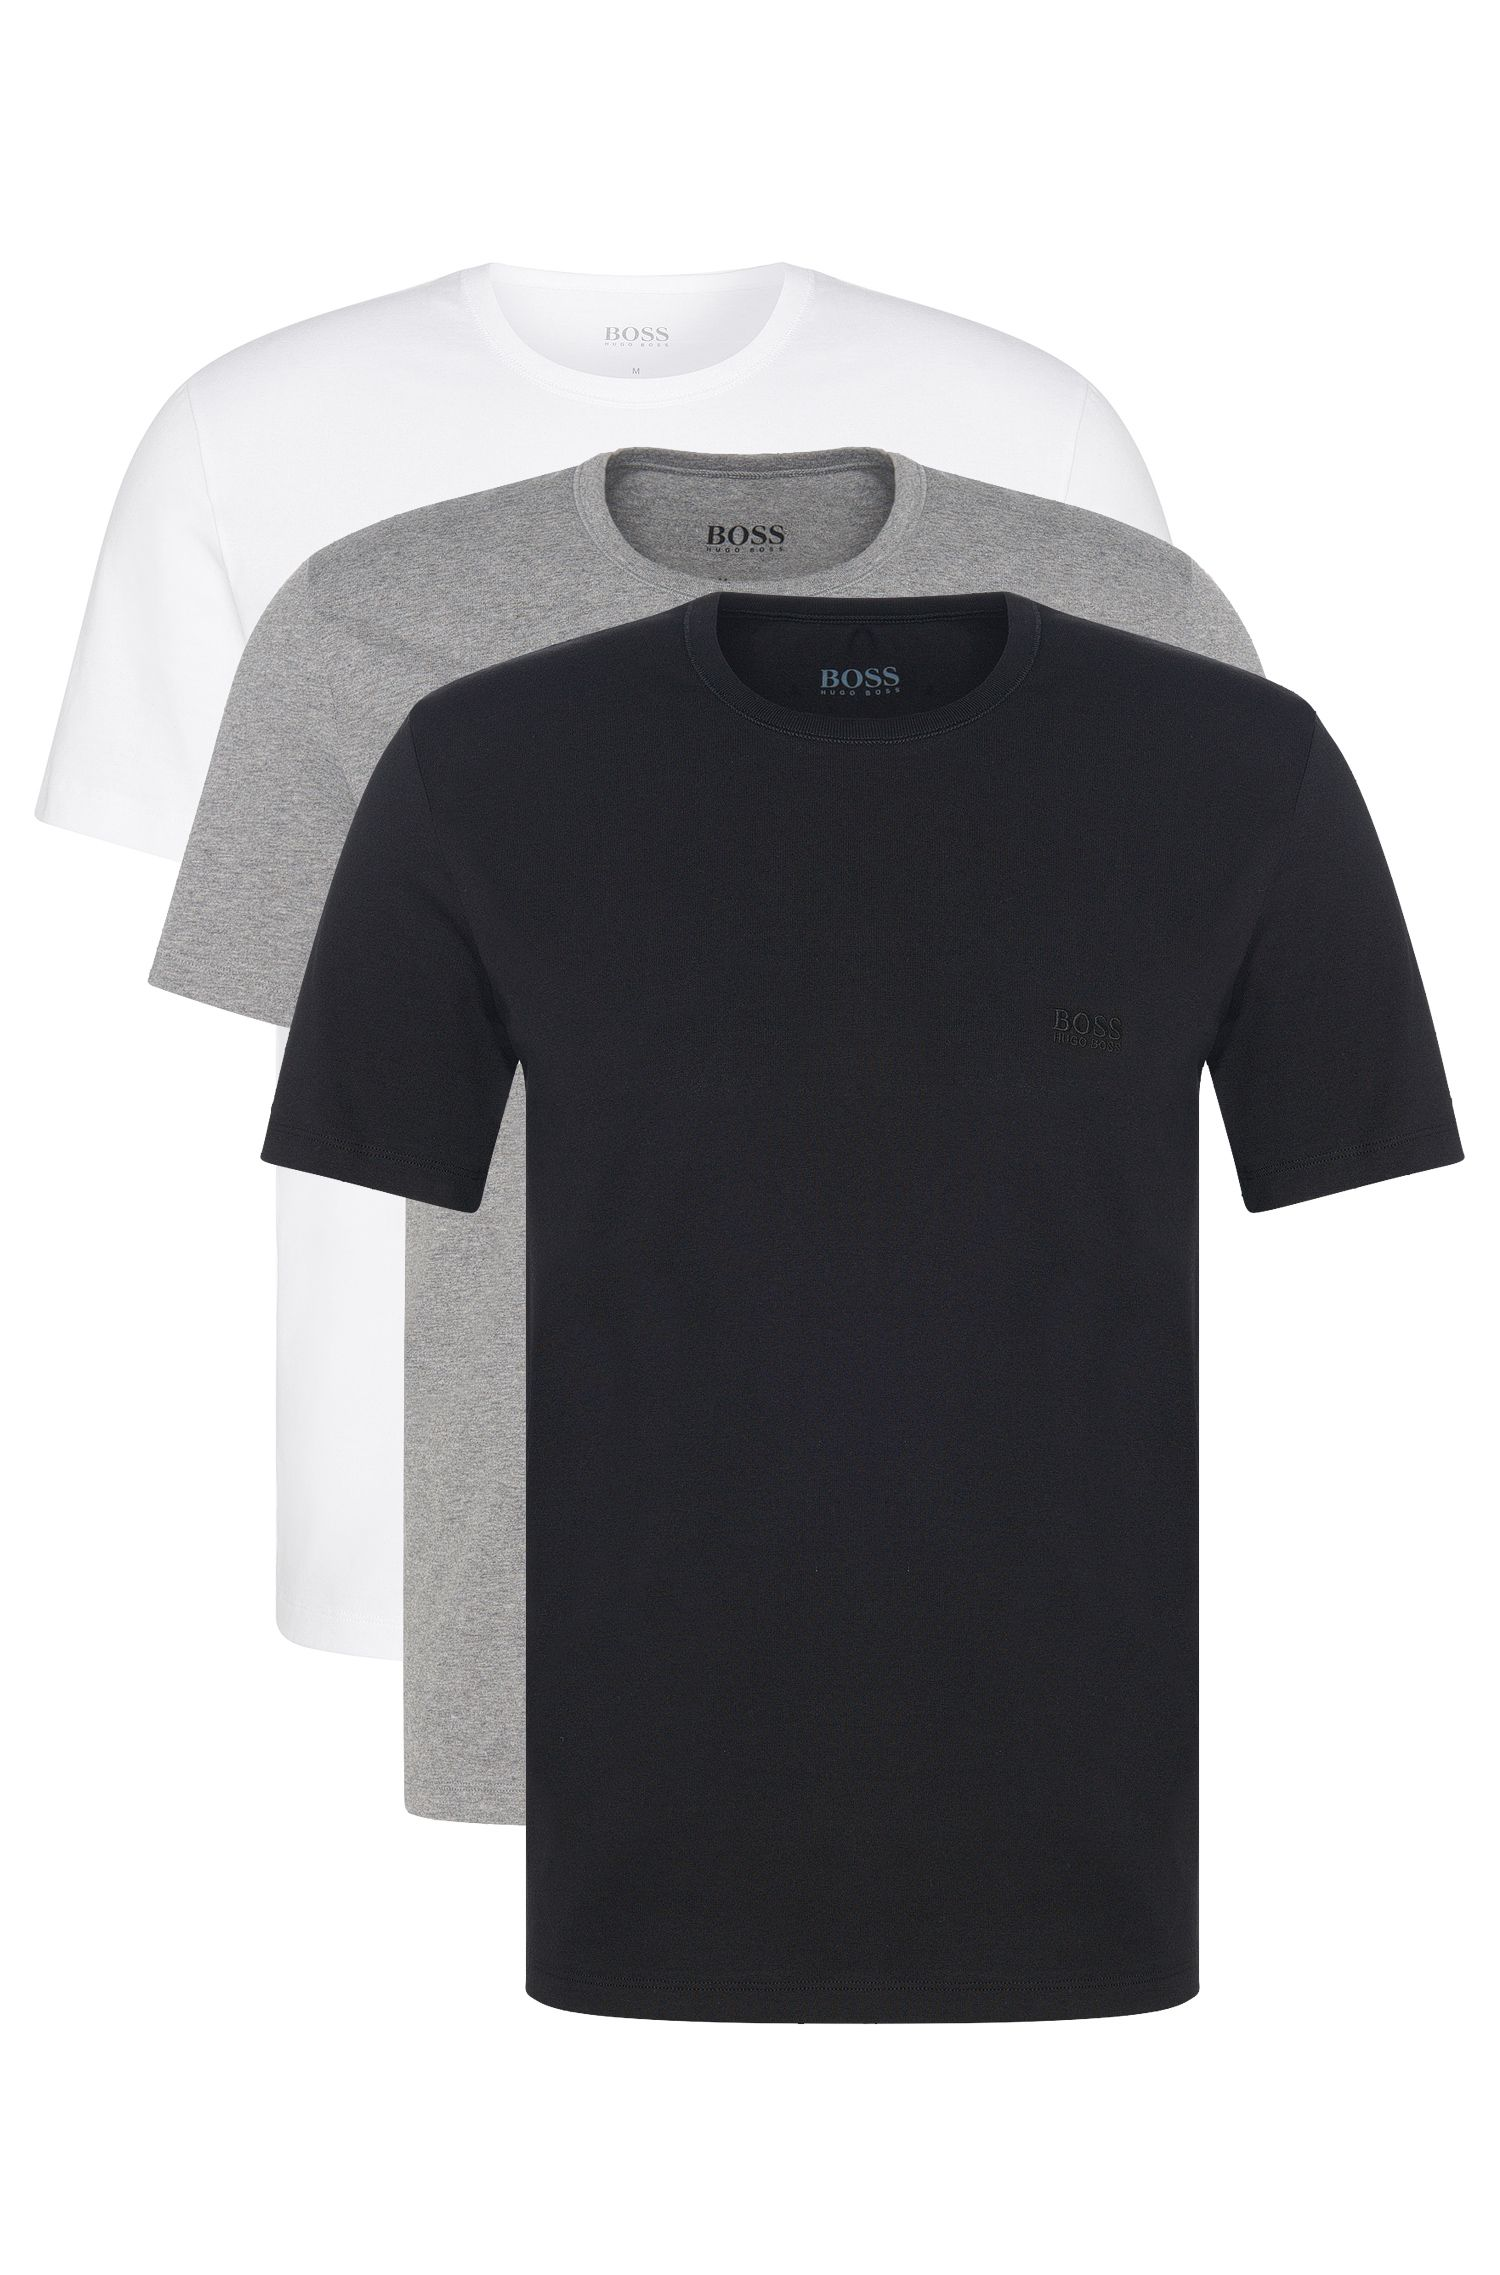 Regular-Fit Baumwoll-T-Shirts im Dreier-Pack von BOSS Menswear